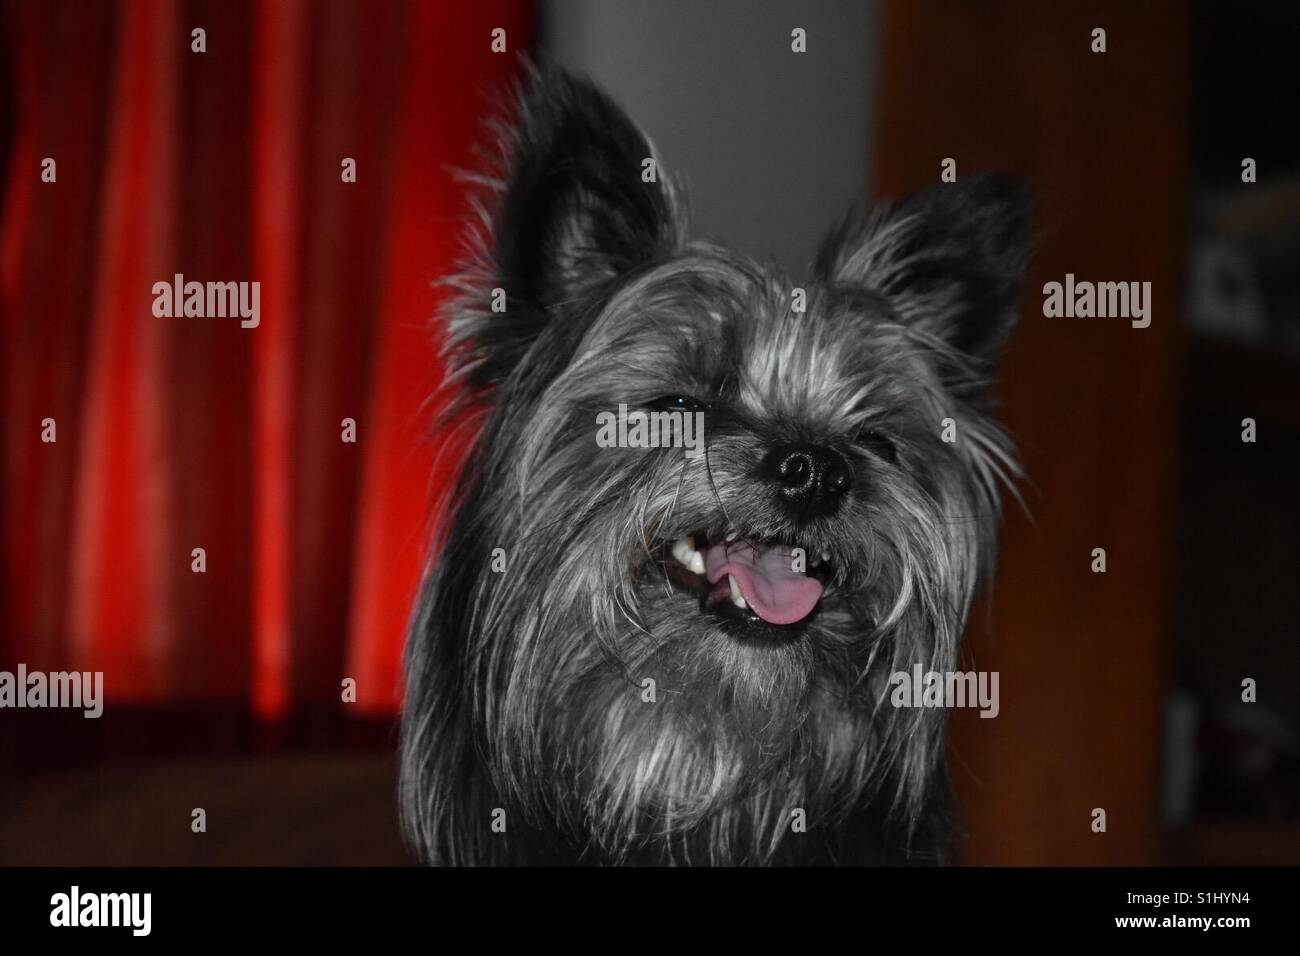 yorkshire terrier - Stock Image